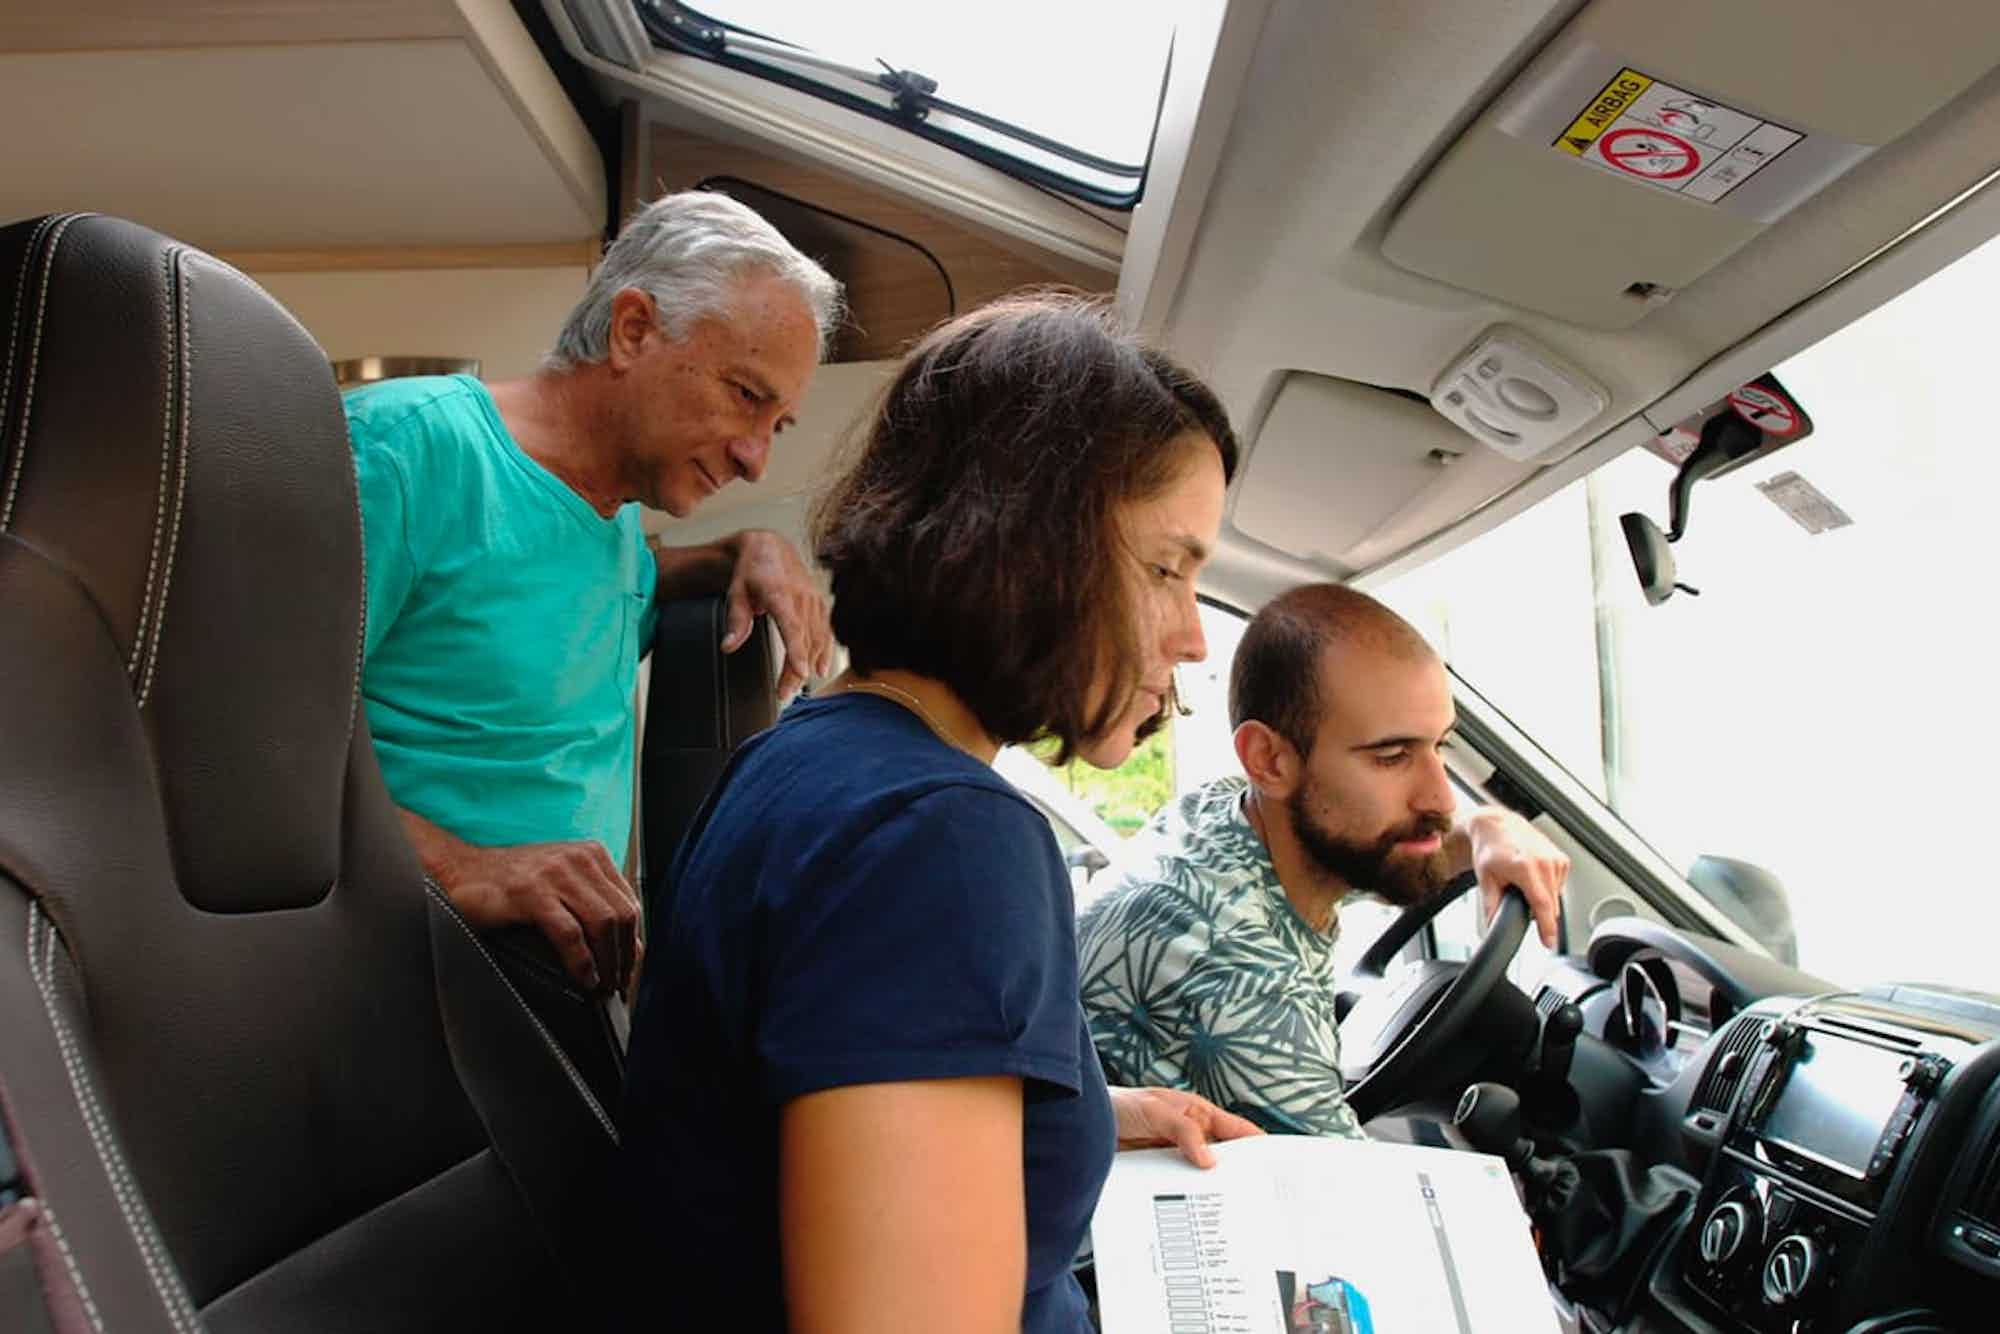 A family renting a campervan